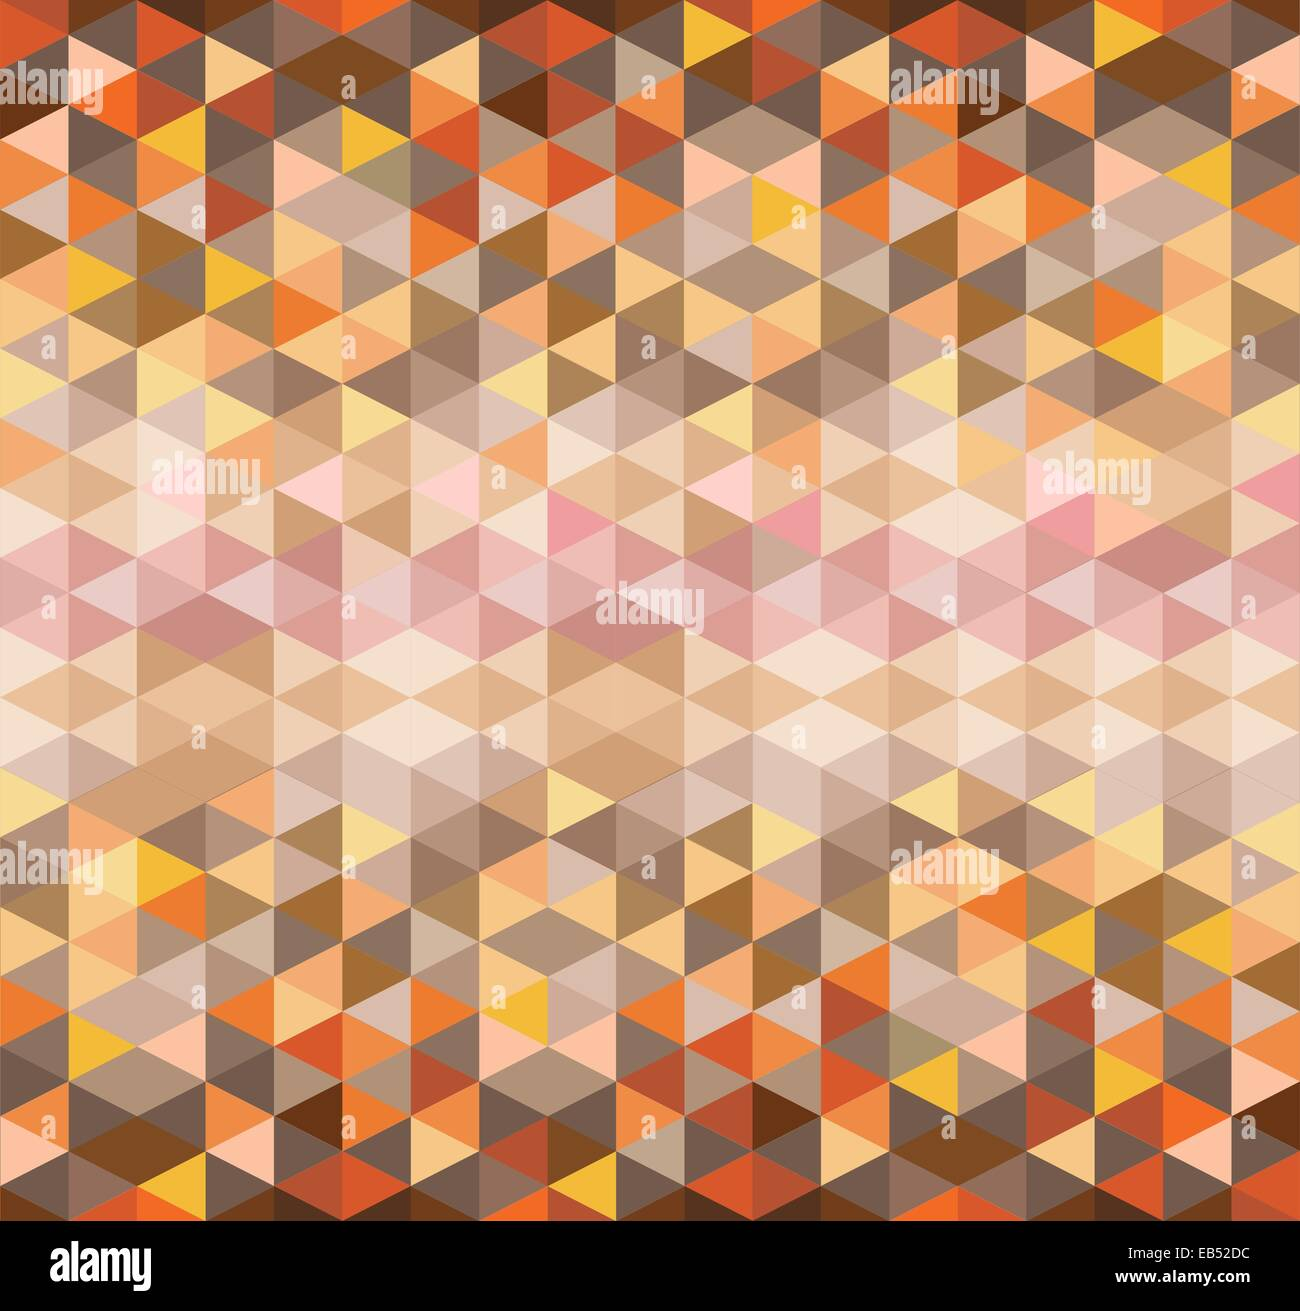 Orange and brown triangle pattern - Stock Image